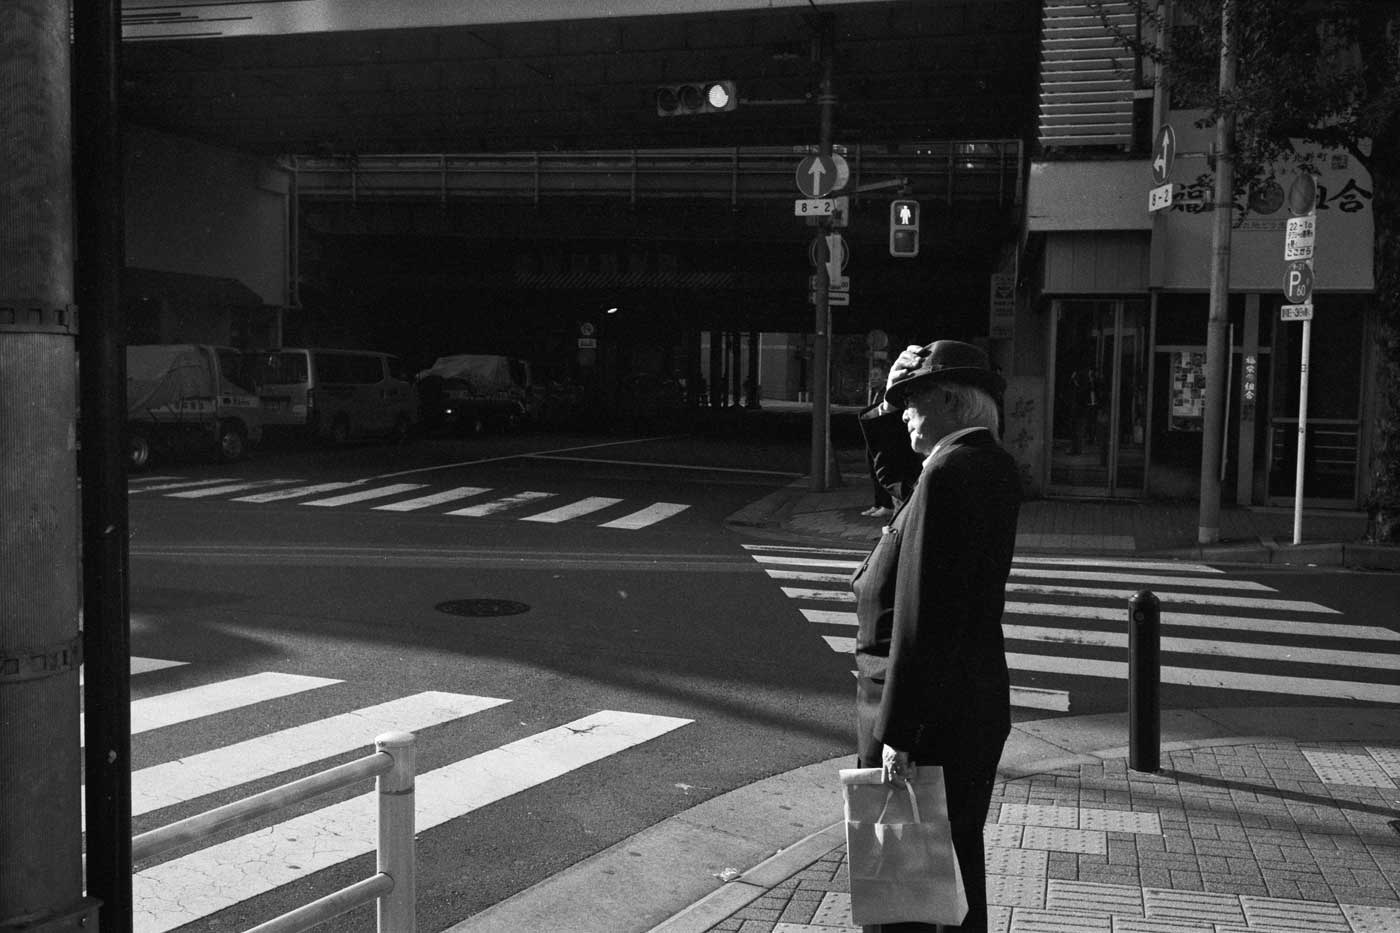 portfolio-we-have-seen-better-days-japan-tokyo-street-project-blog-photography-film-Yurakucho-day-Kentmere-400-leica-35mm-f1.4-35-summilux-infinity-lock-bw-black-and-white-old-man-with-hat-crossing-road